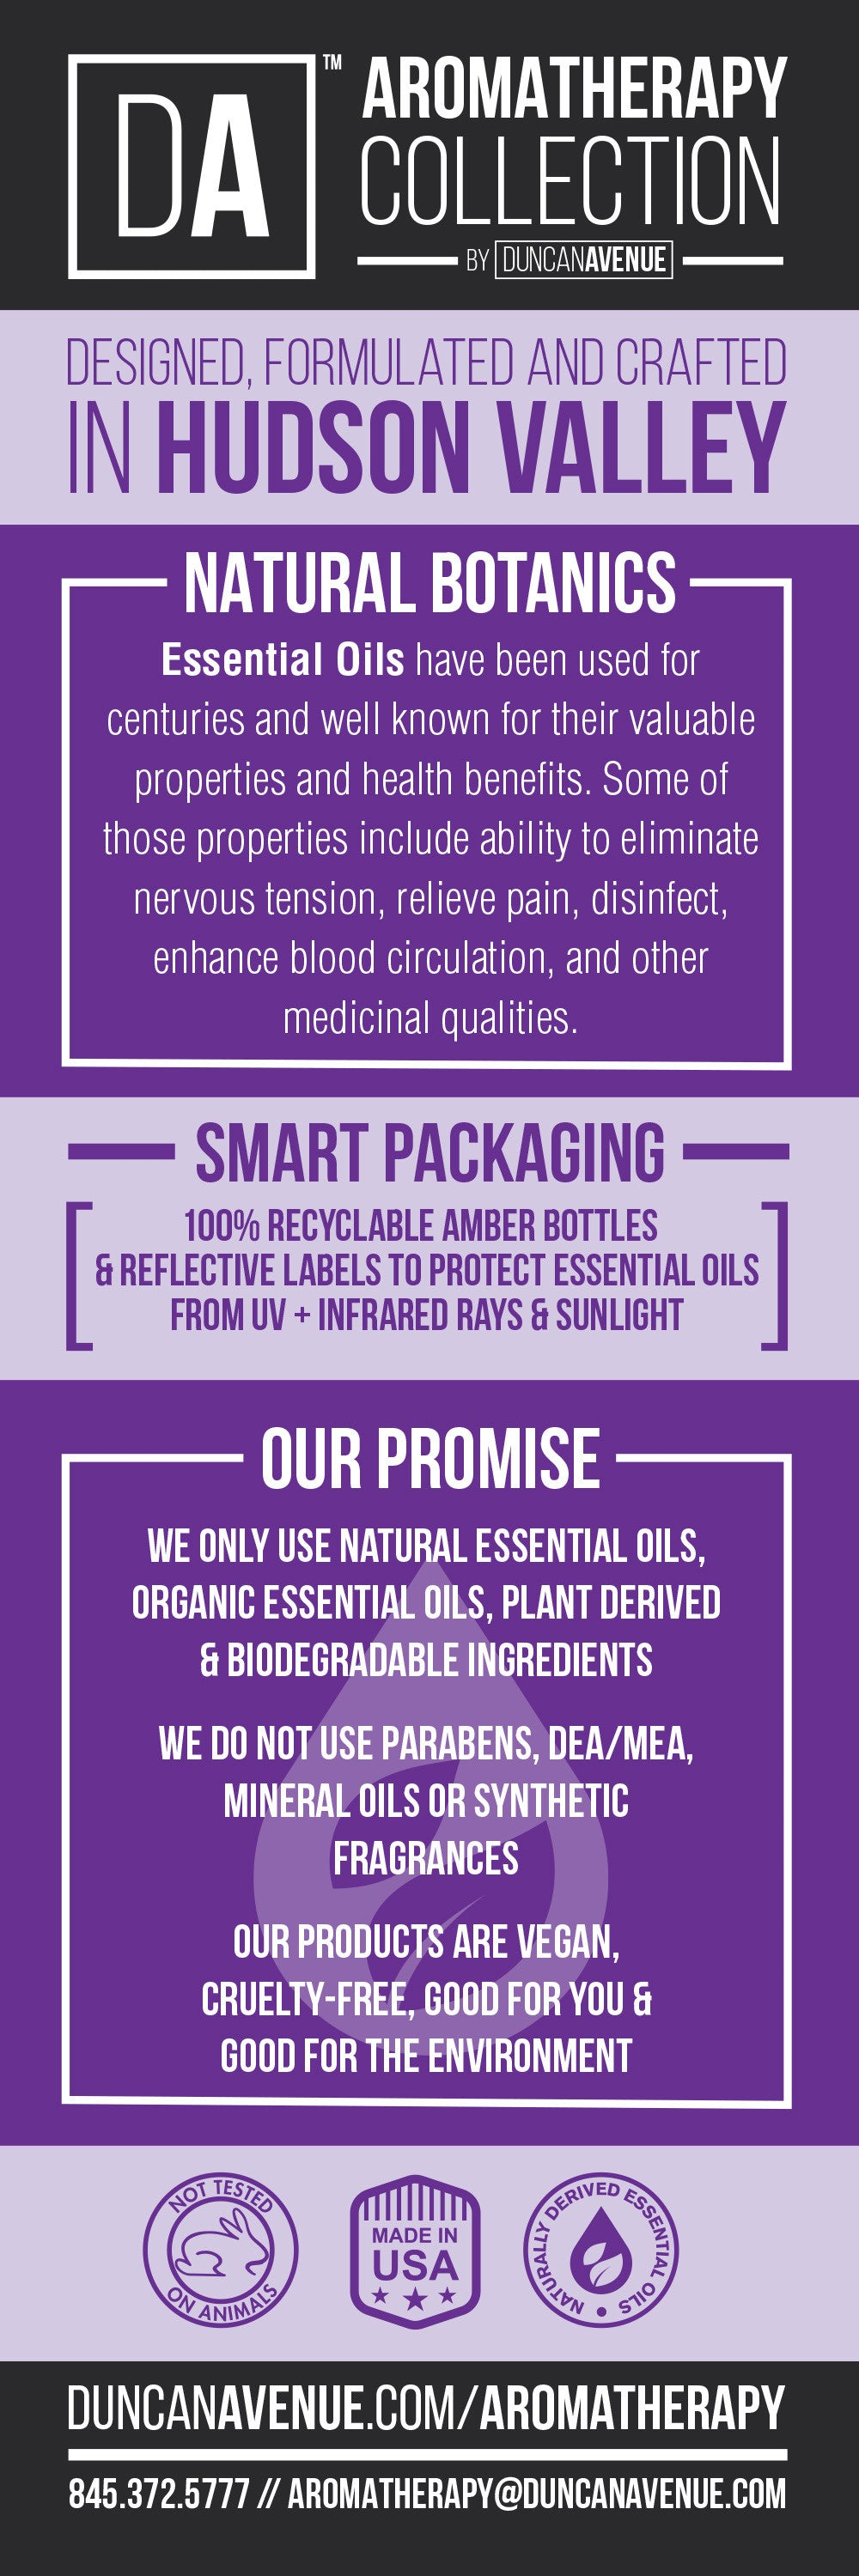 OUR PROMISE: PLANT DERIVED INGREDIENTS / NO PARABENS / NO SULFATES / NO DEA/MEA / VOC-FREE / BIODEGRADABLE / CRUELTY-FREE / GOOD FOR YOU & GOOD FOR THE ENVIRONMENT / MADE IN THE USA / DESIGNED & CRAFTED IN HUDSON VALLEY.